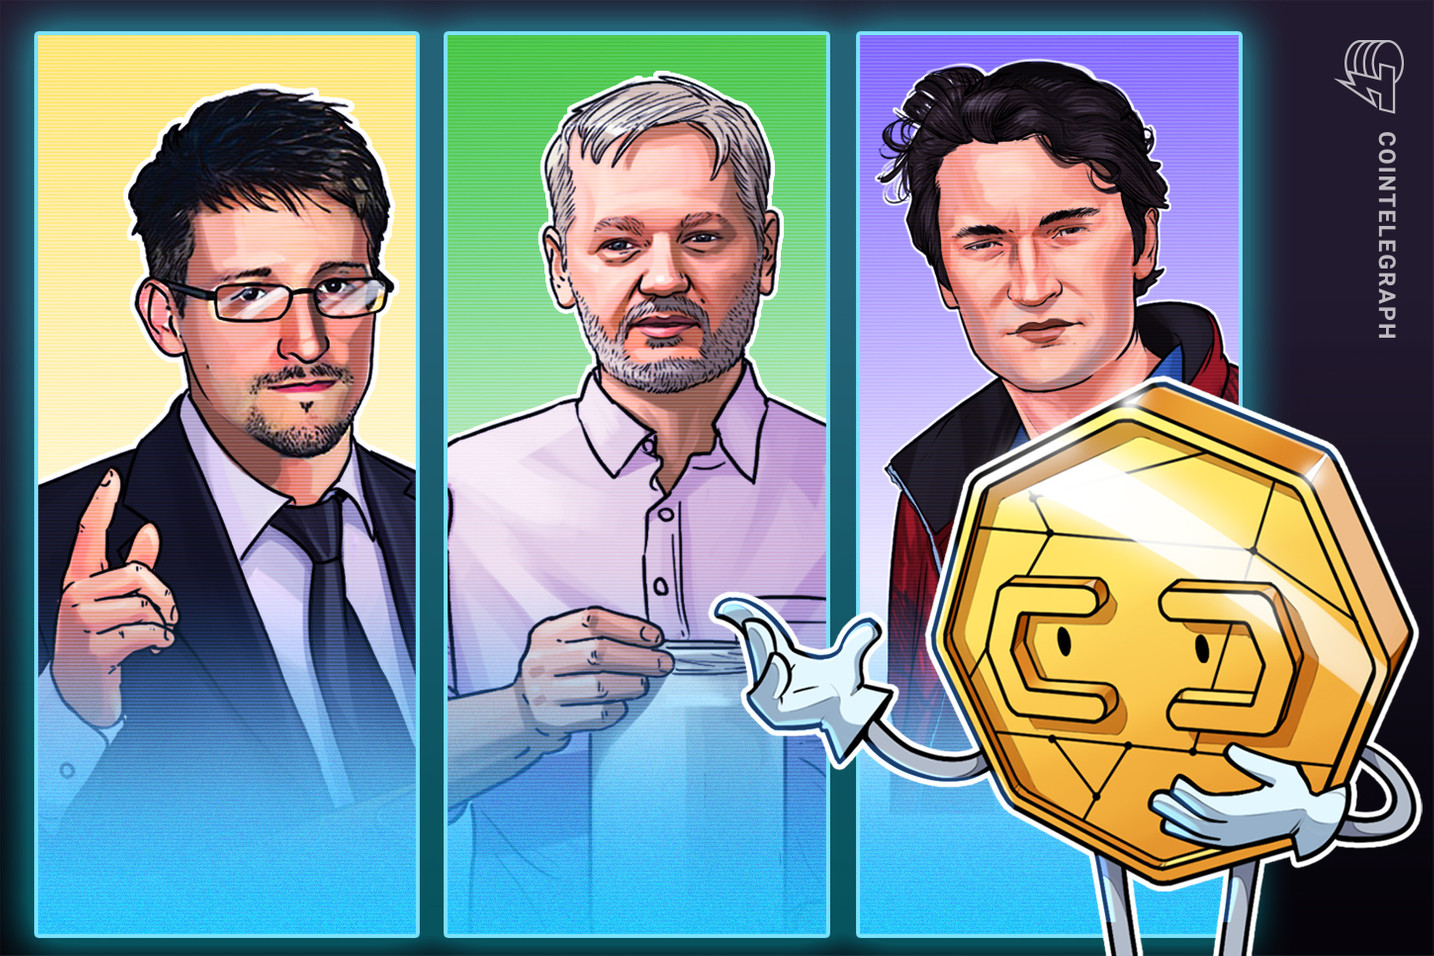 Crypto players plead presidential pardon case for Ross Ulbricht